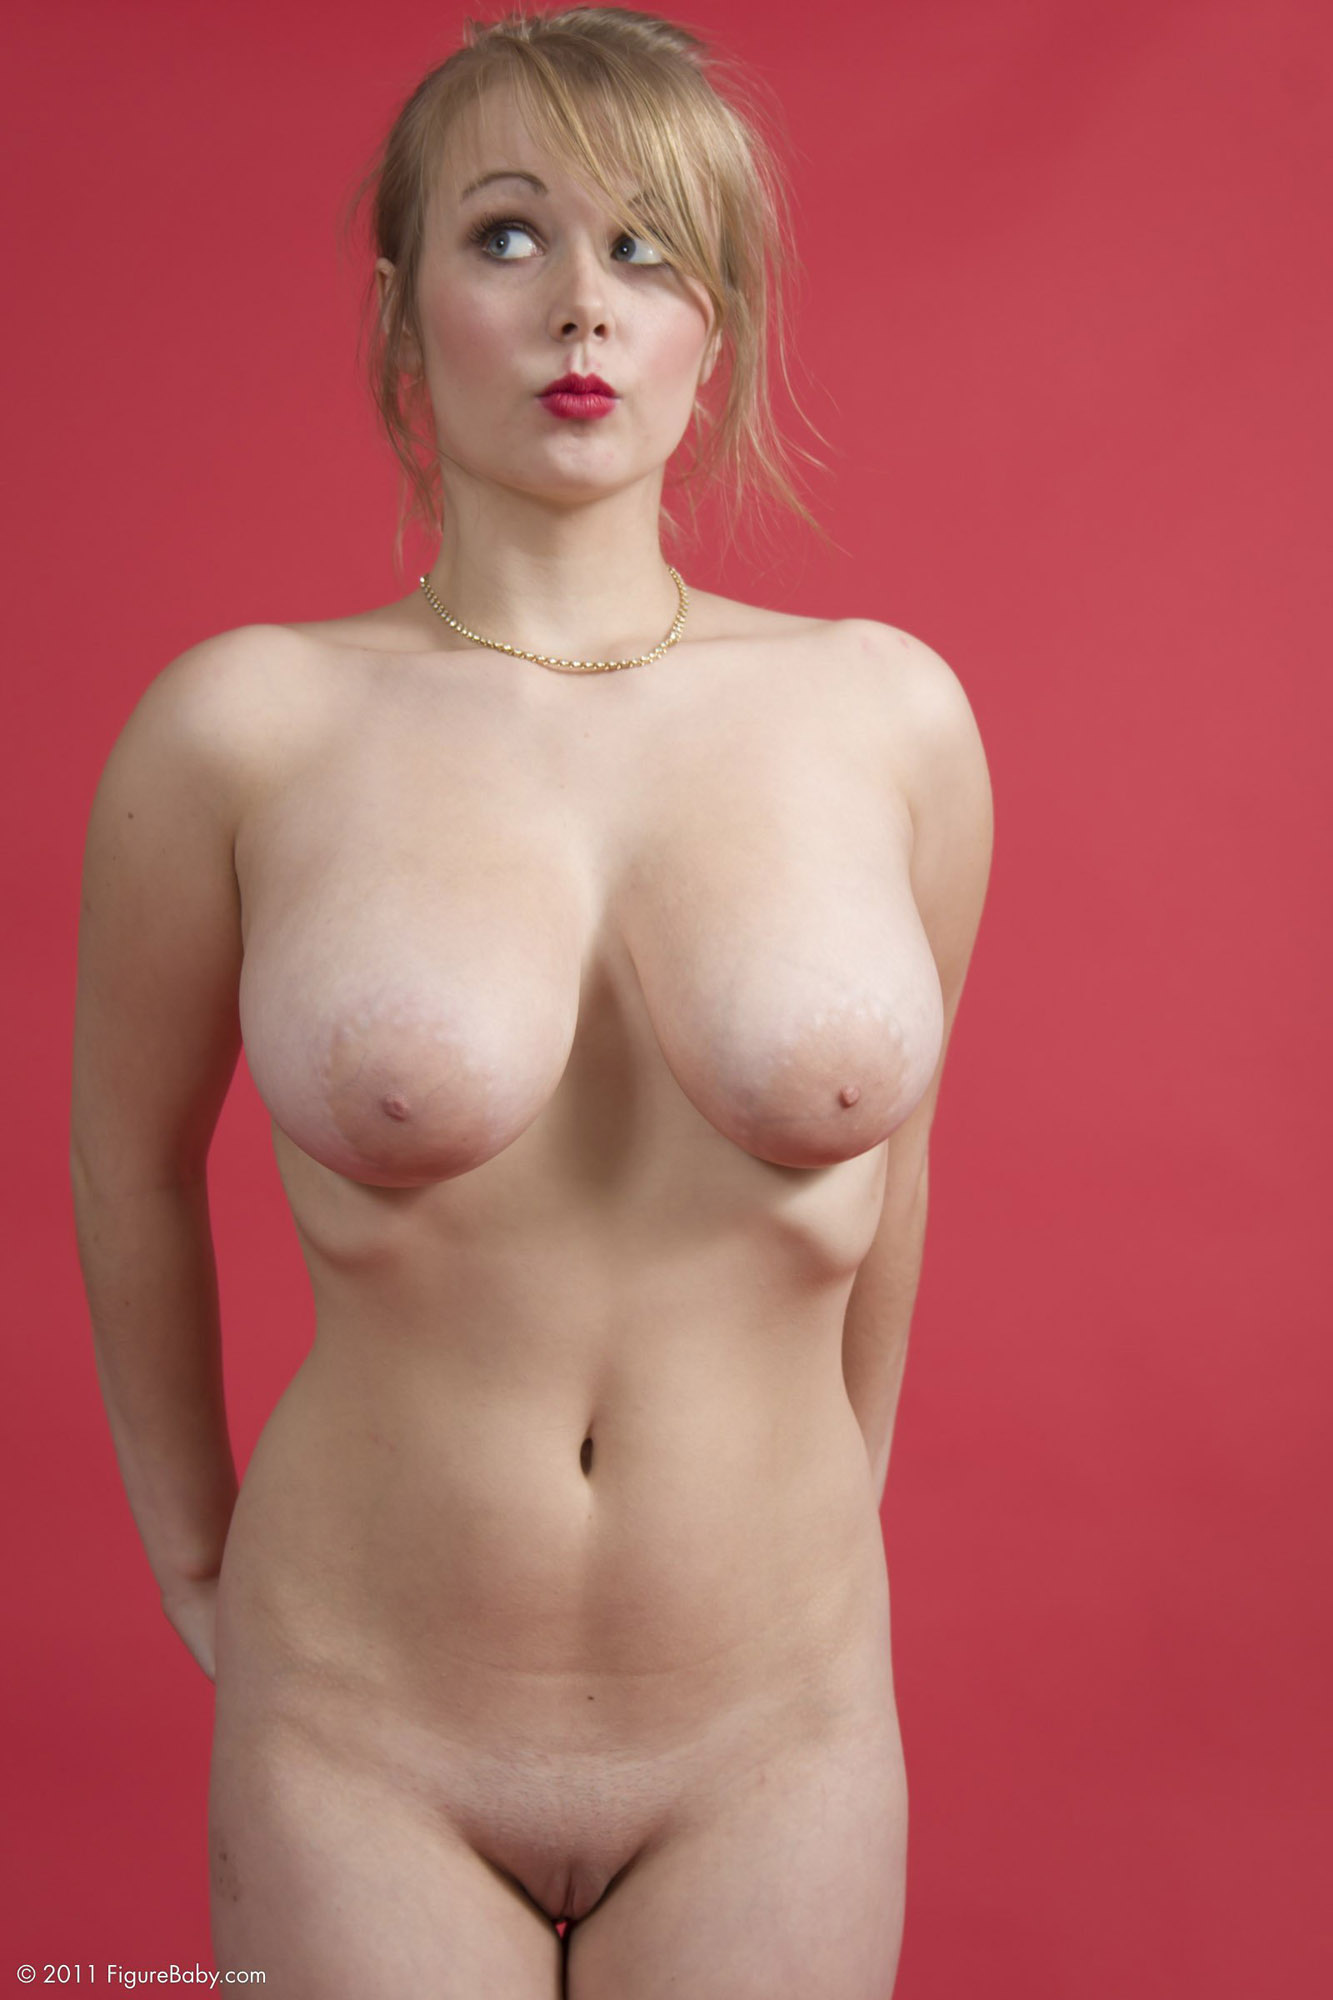 Sorry, Best figure in world girl nudes opinion